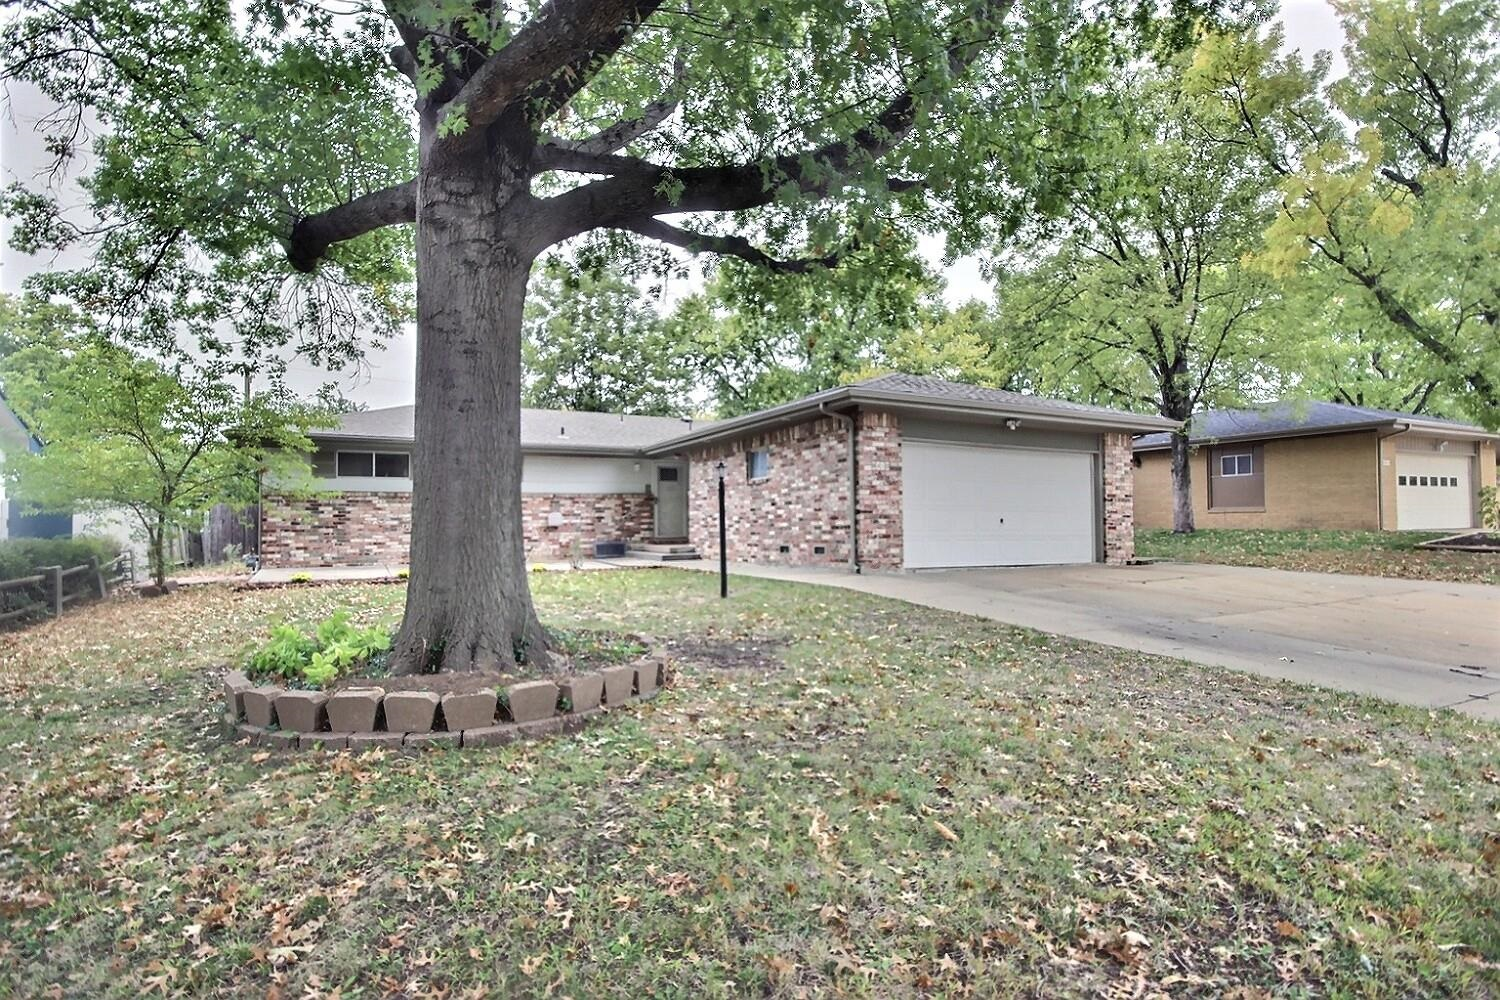 MOVE IN READY RANCH, NESTLED IN TREED SOUTHEAST NEIGHBORHOOD. FRESHLY PAINTED ROOMS WITH NEW CARPET